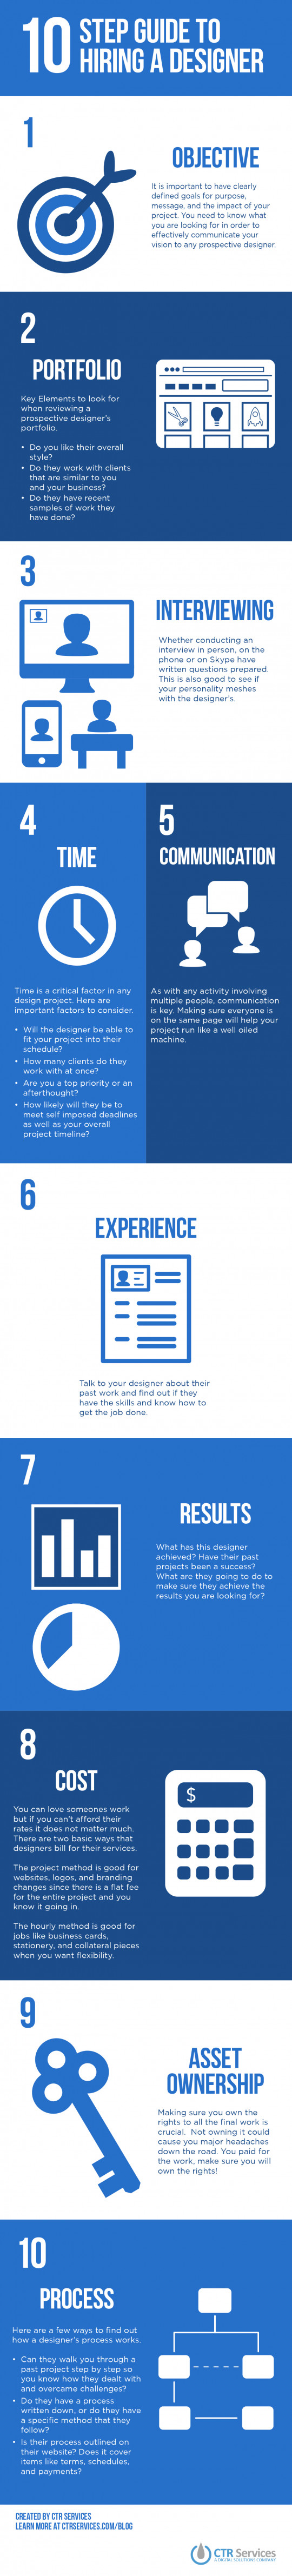 10 Step Guide to Hiring a Designer